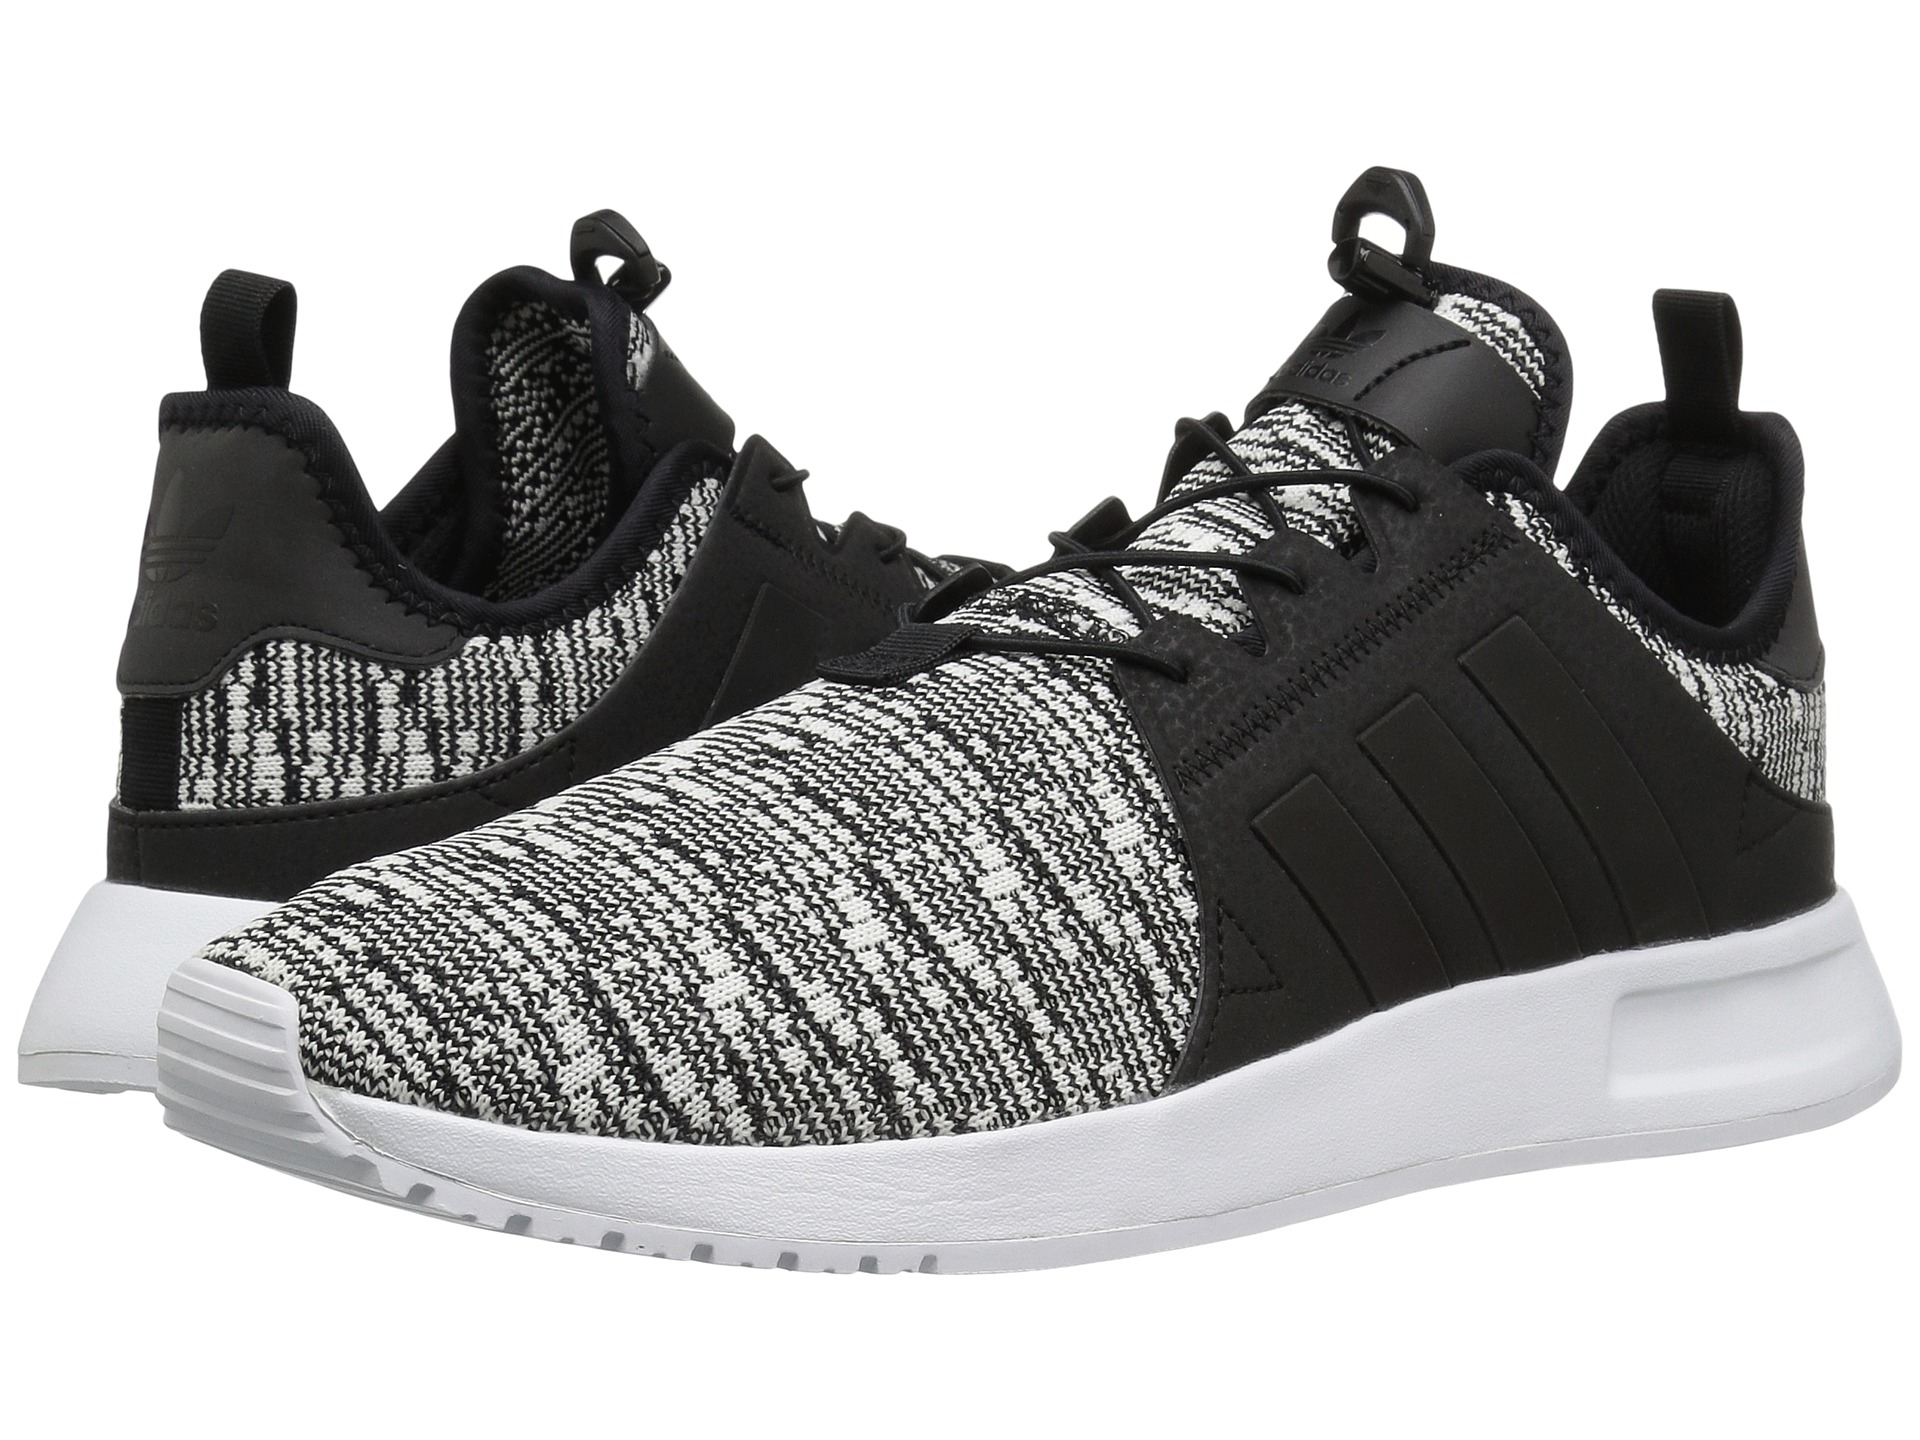 f5524d97078b4 adidas® Best Sellers. Deals of the day fast shipping read adidas ultra  boost black white 1.0 ratings reviews explore ...